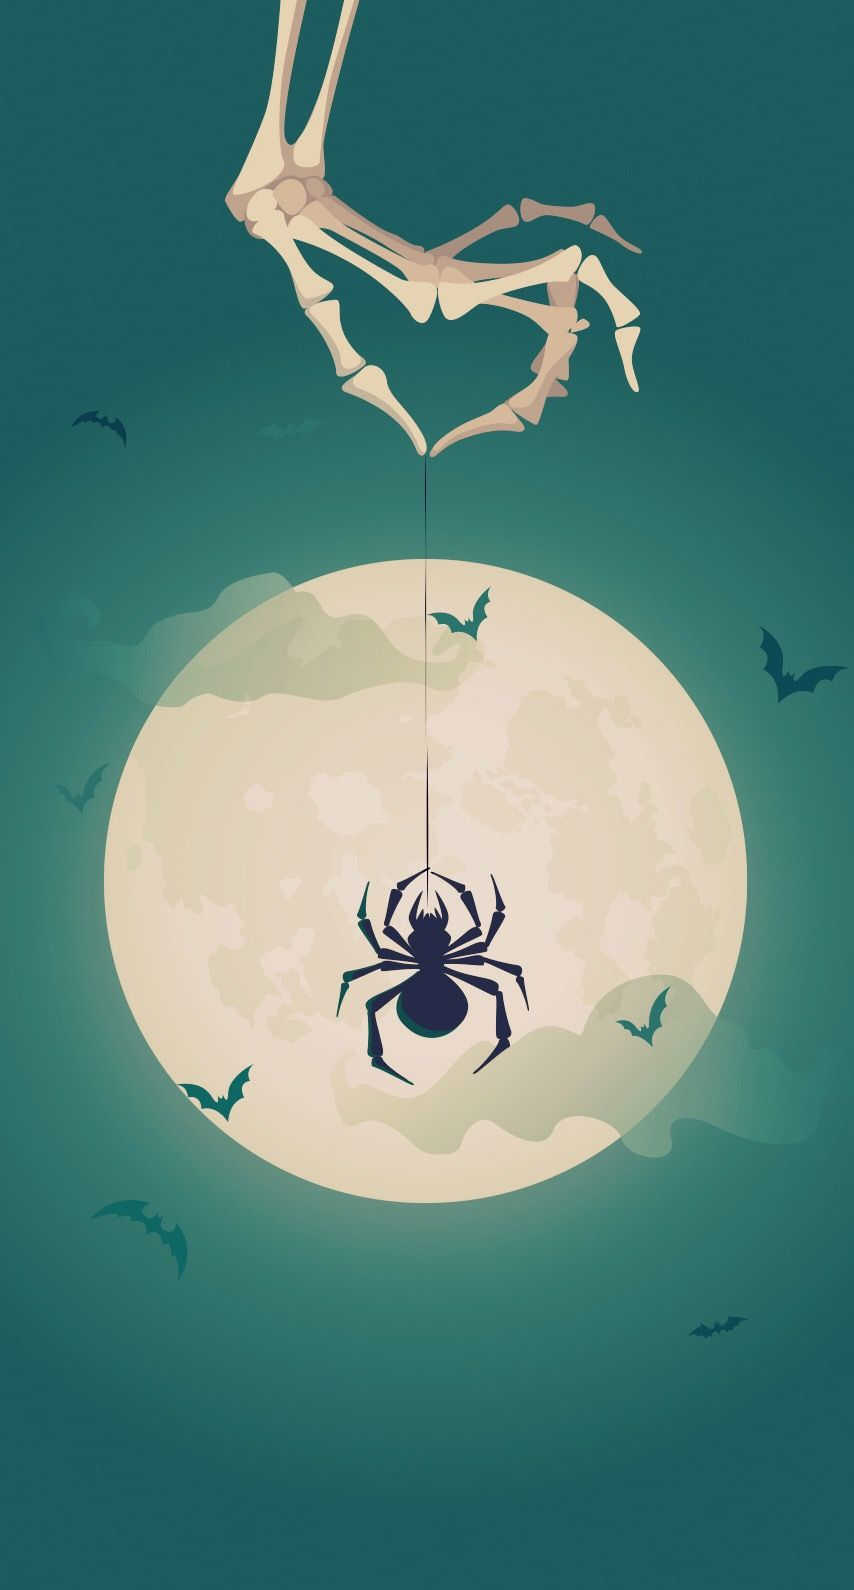 Most Inspiring Wallpaper Halloween Mobile Phone - 86740eaa675f0ea1b0f39969f0611304  Graphic_258849.jpg